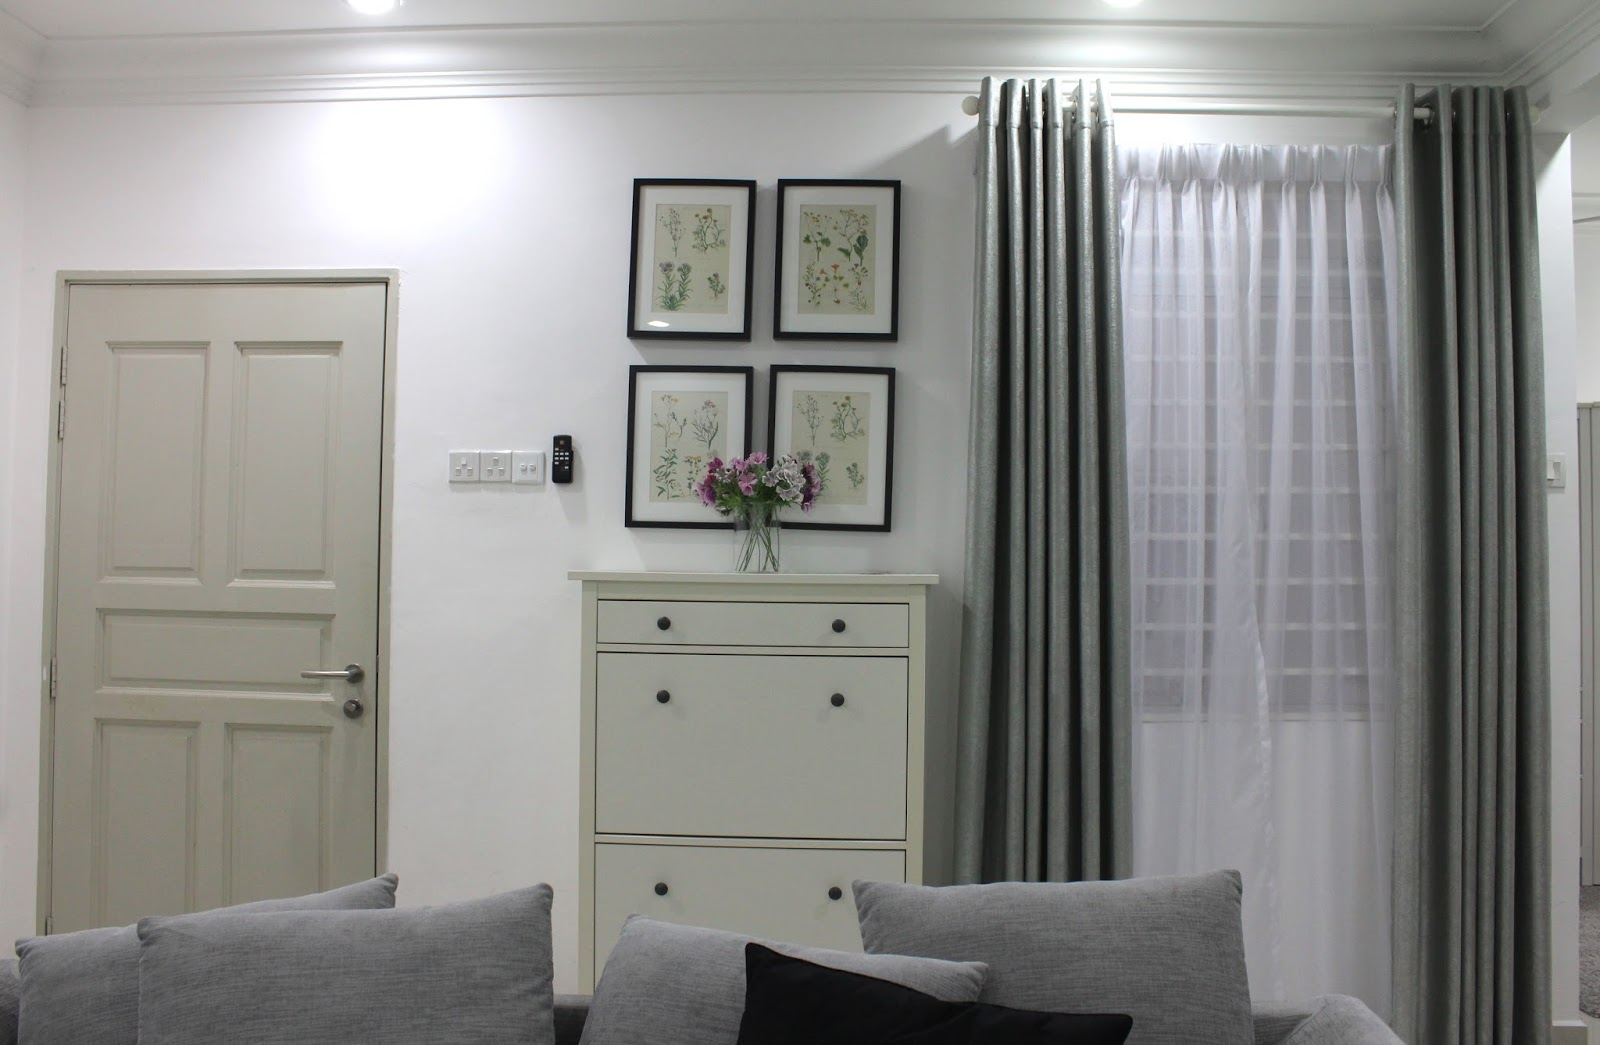 Deco Ikea dedans road to there: namsy loves deco : projek langsir